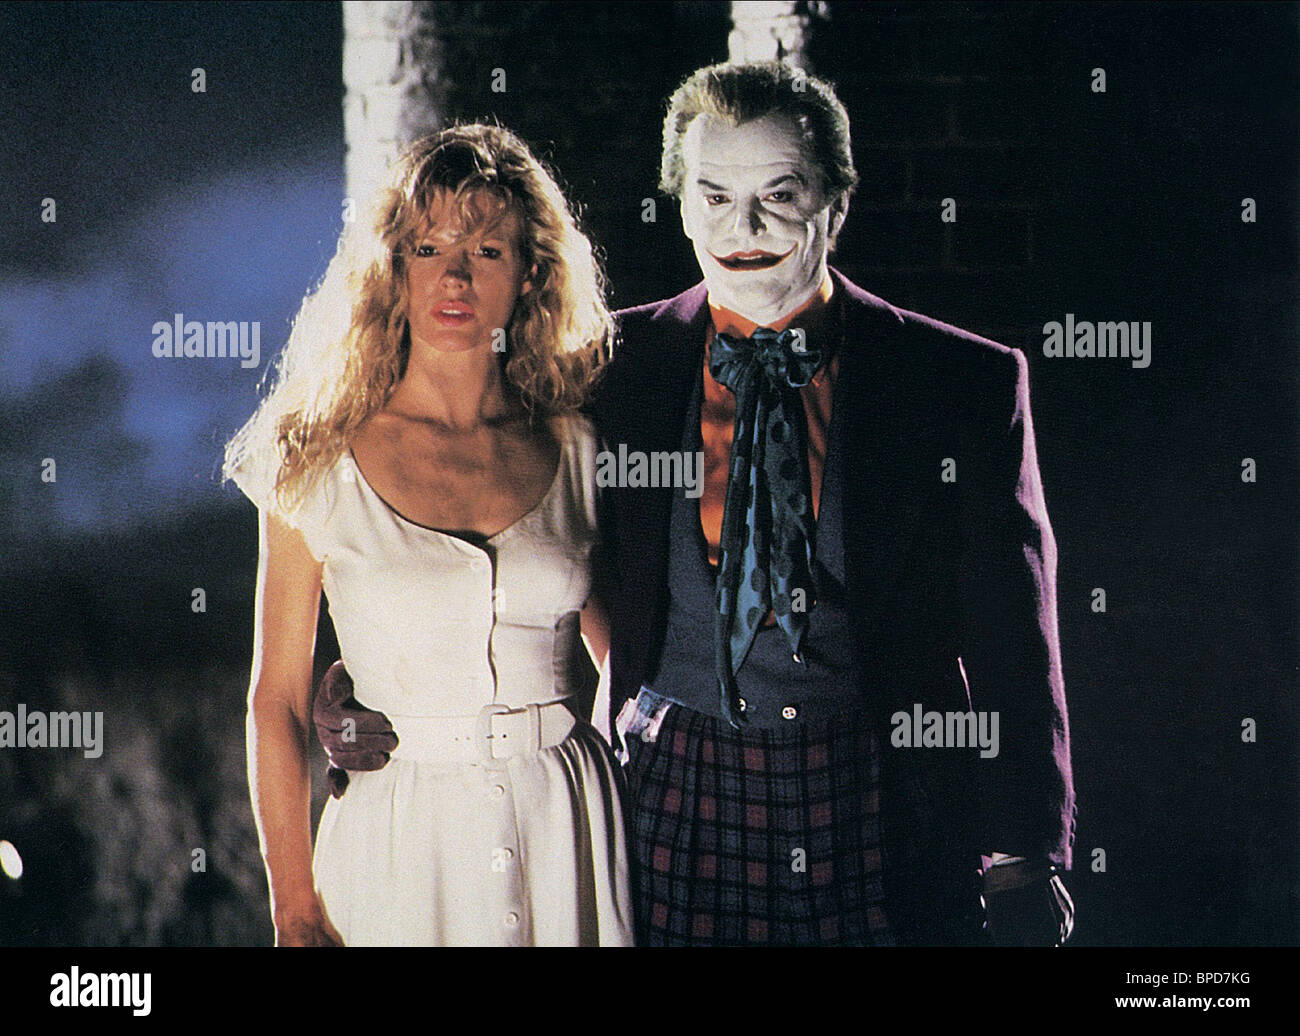 KIM BASINGER & JACK NICHOLSON BATMAN (1989 Stock Photo ...